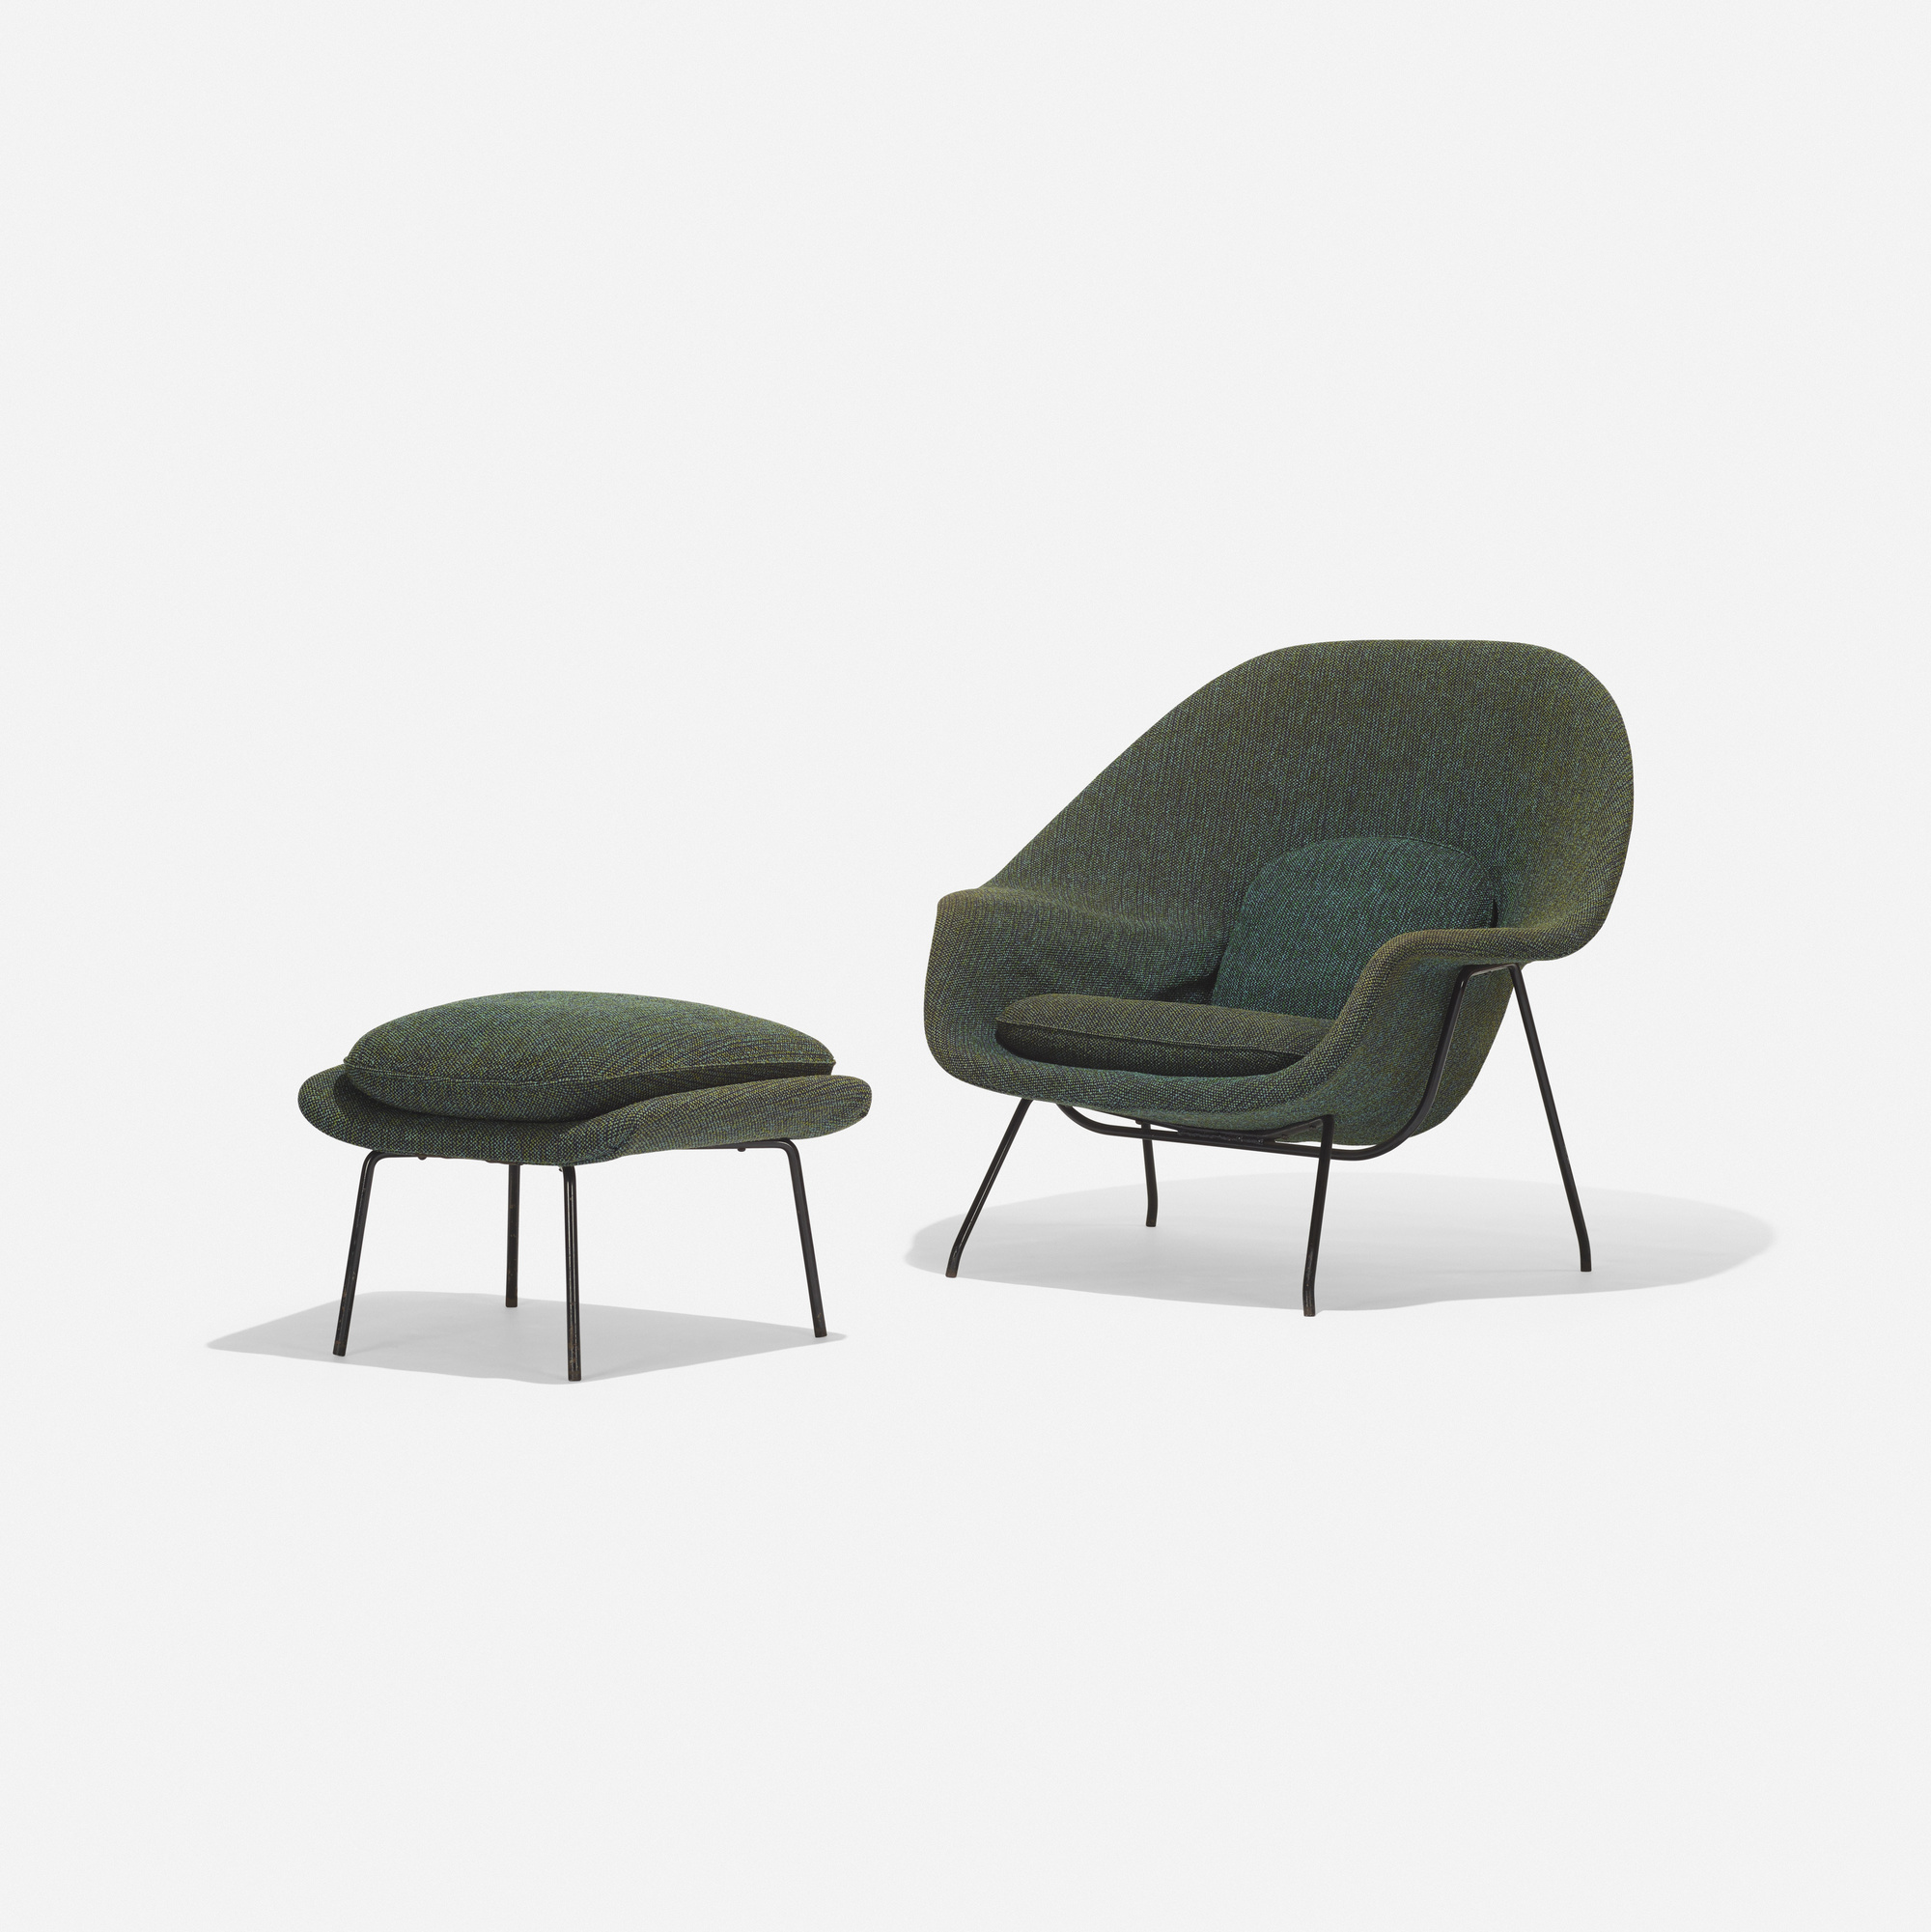 229 eero saarinen womb chair and ottoman 1 of 3